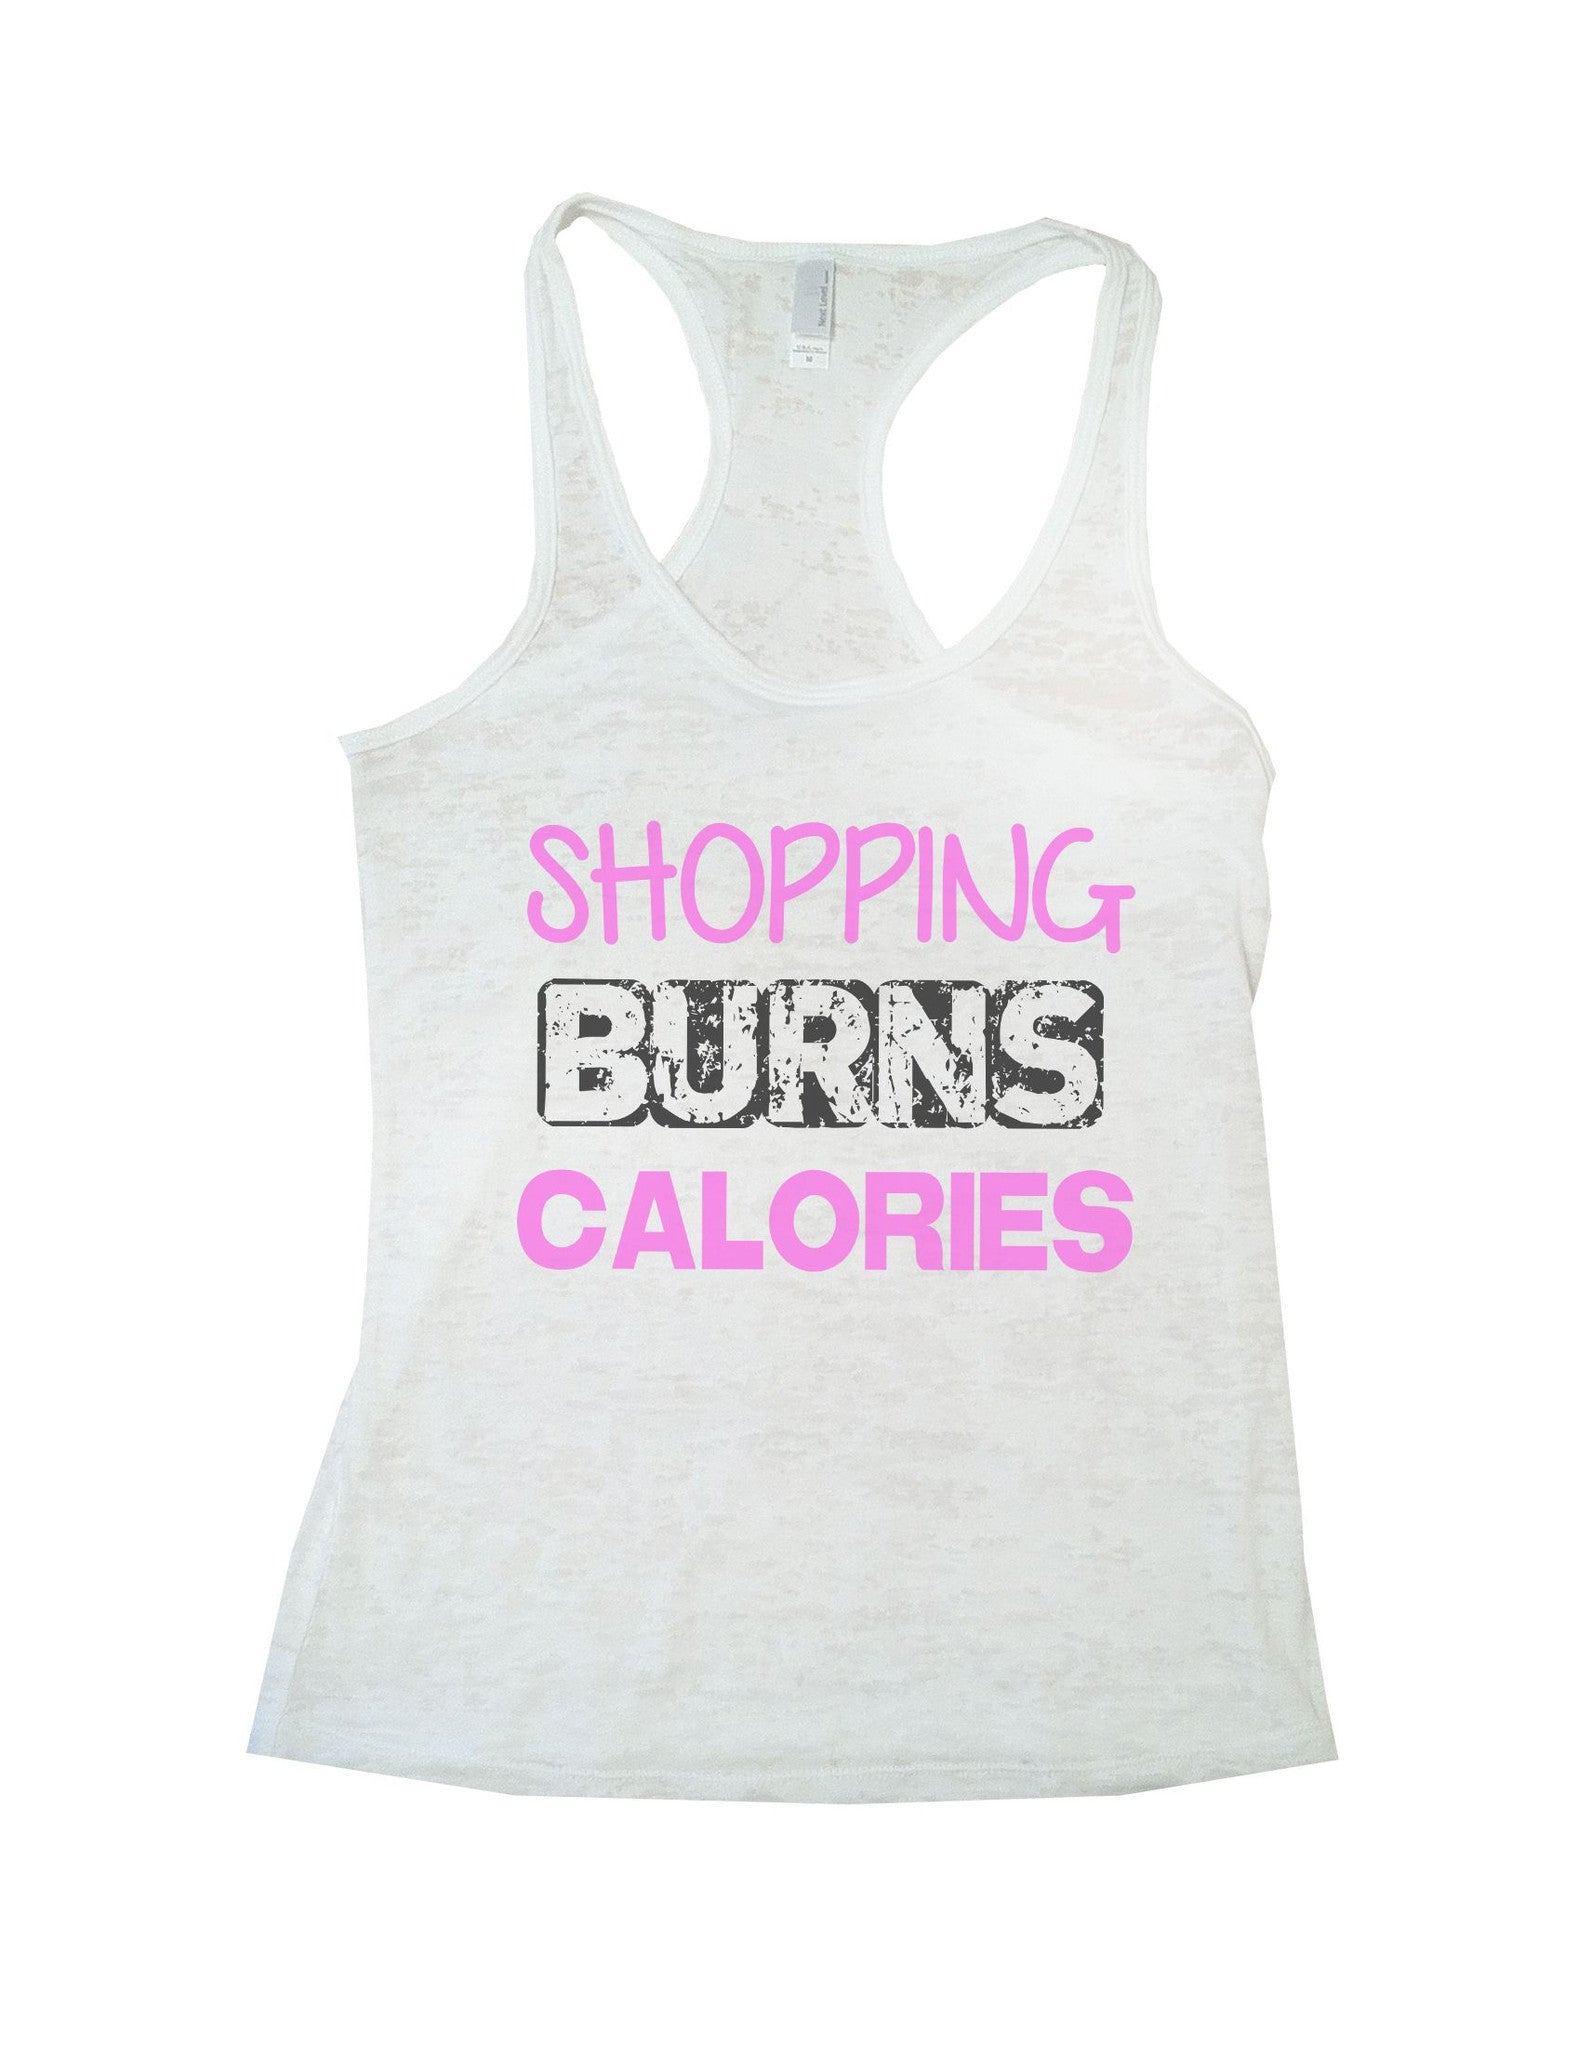 Shopping Burns Calories Burnout Tank Top By BurnoutTankTops.com - 716 - Funny Shirts Tank Tops Burnouts and Triblends  - 5